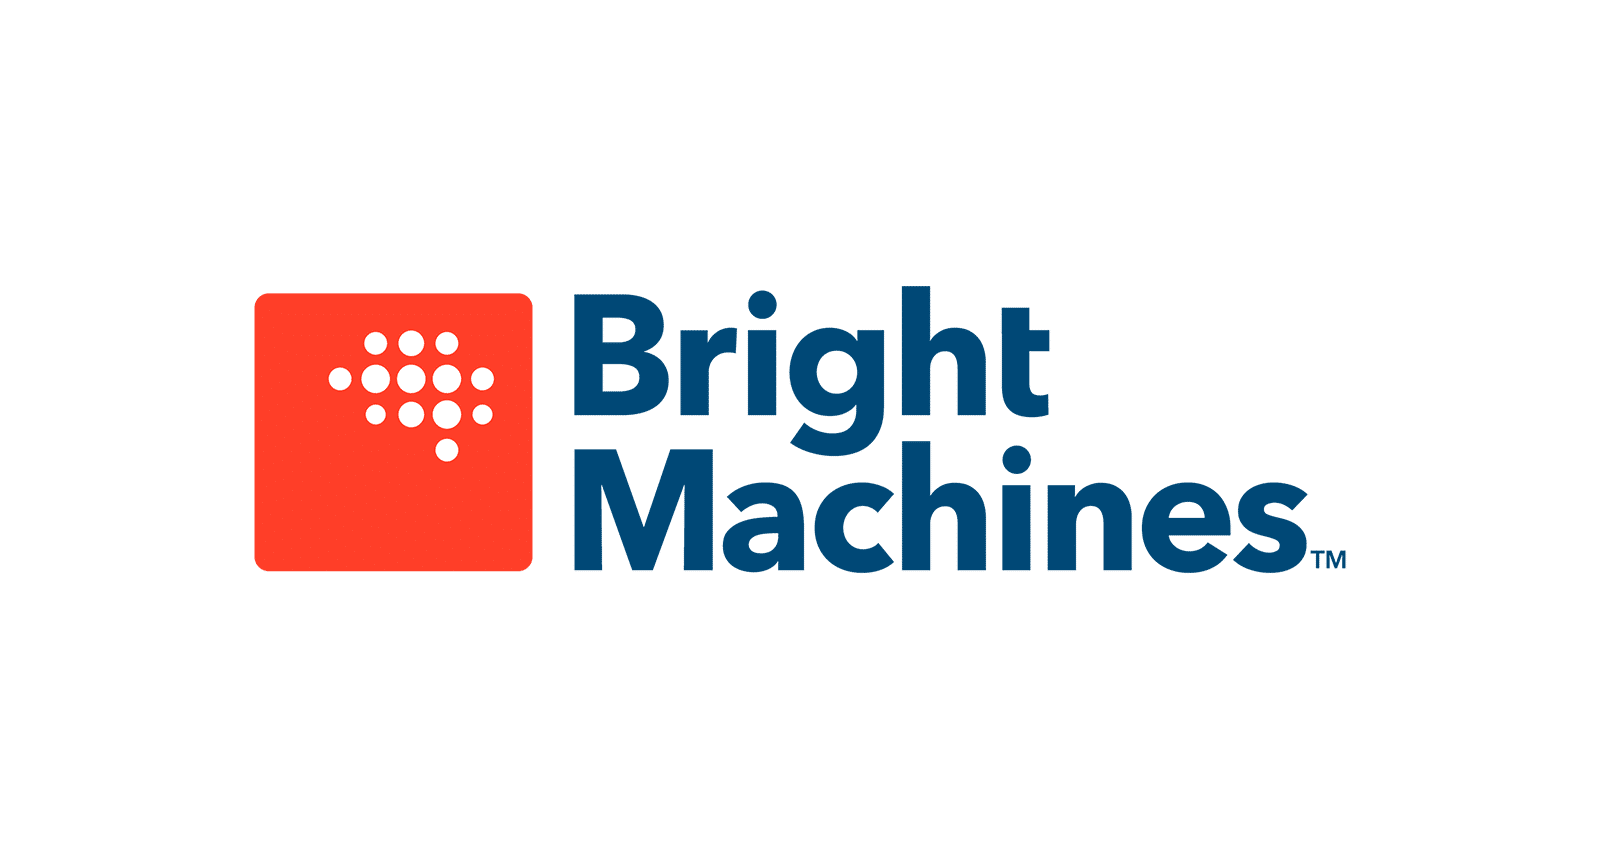 Bright Machines